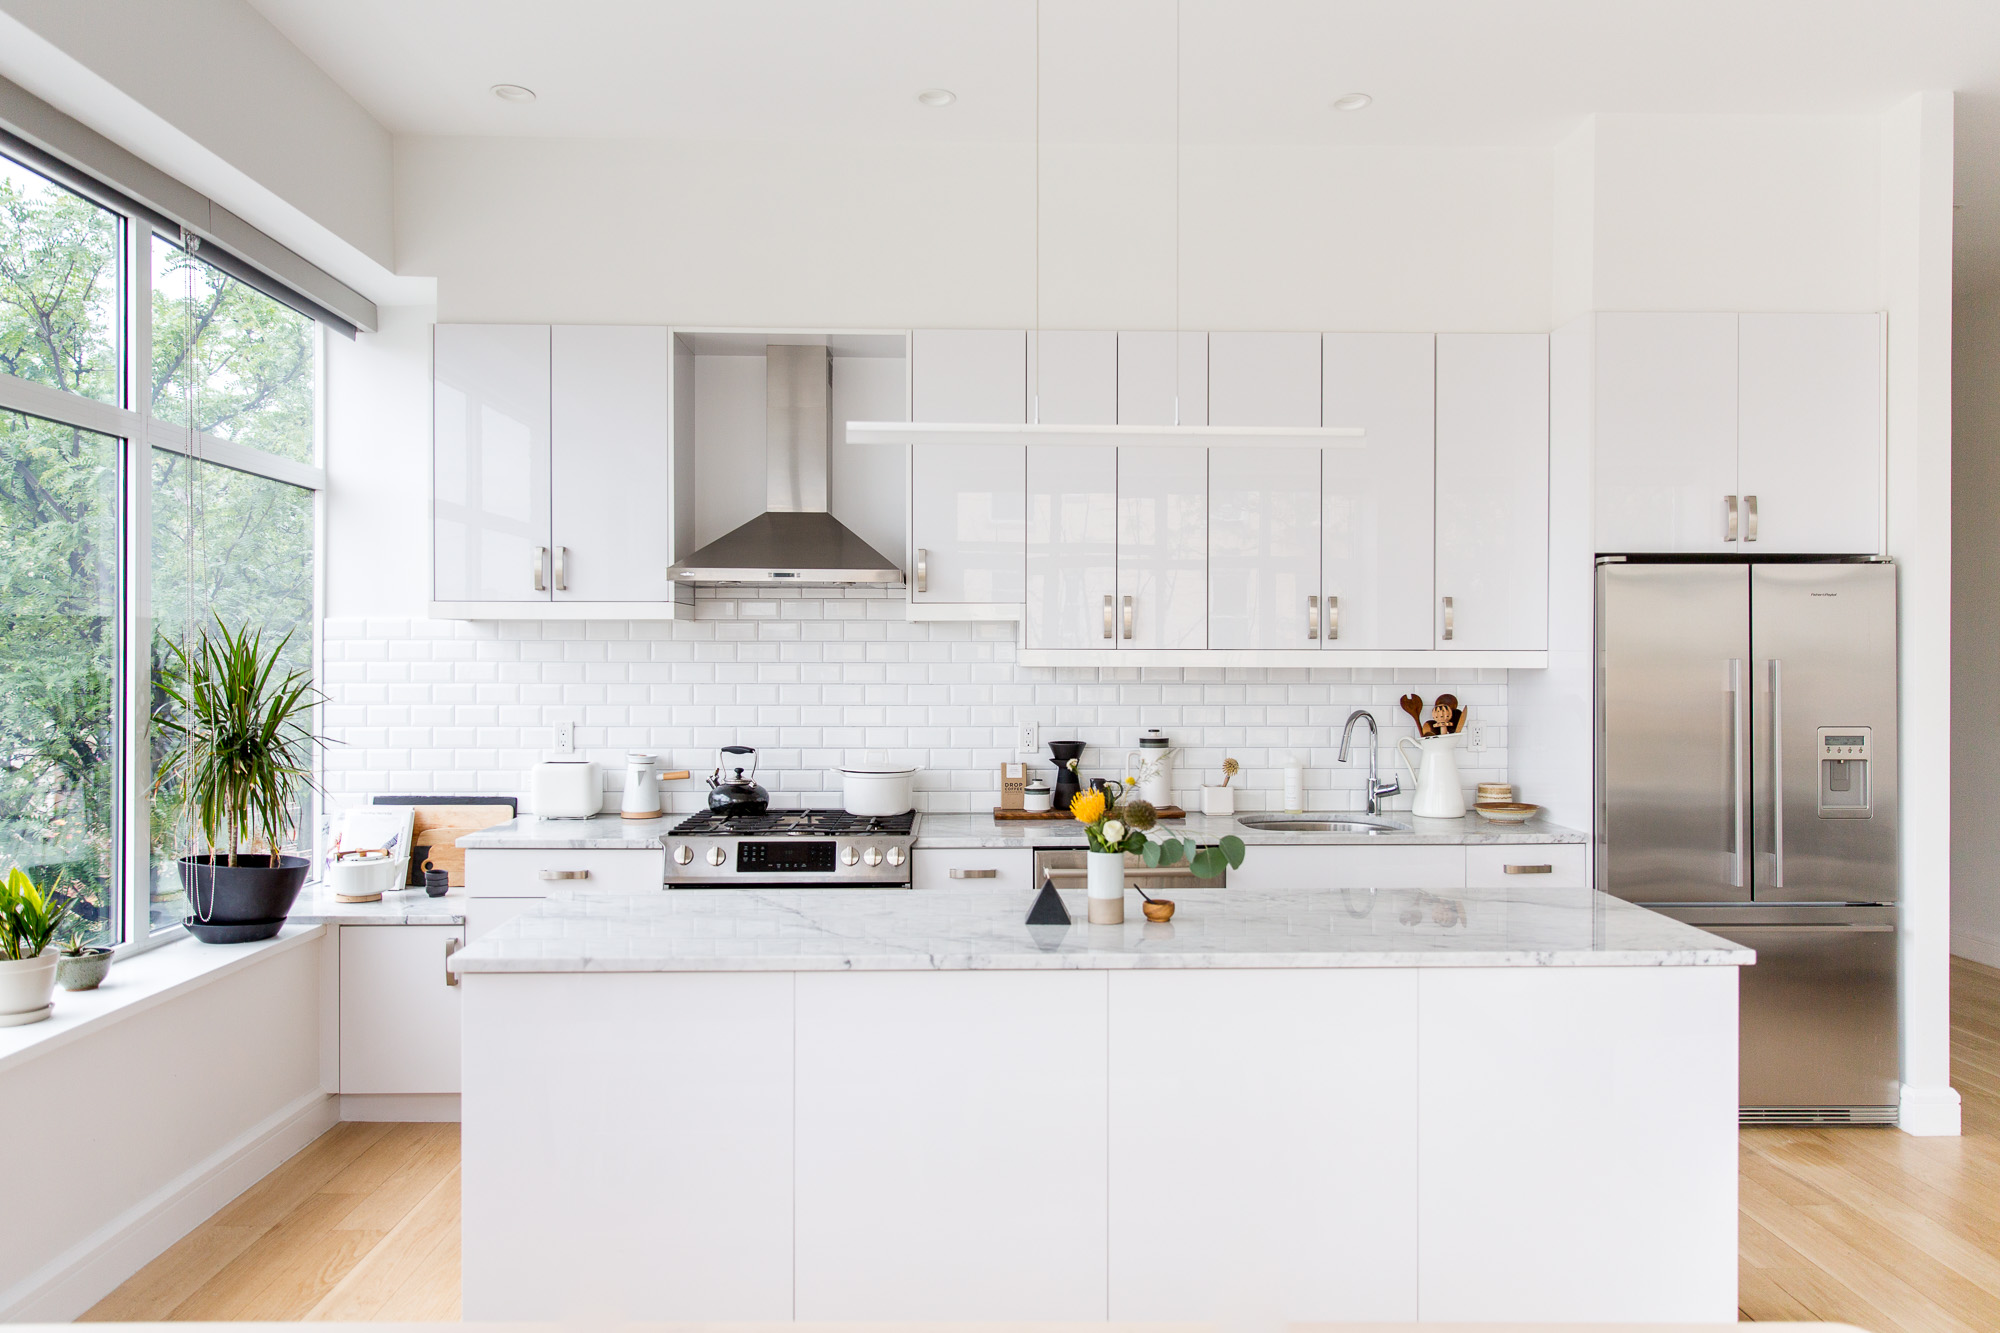 Kitchen Decorating Trends To Avoid 2020 Kitchn